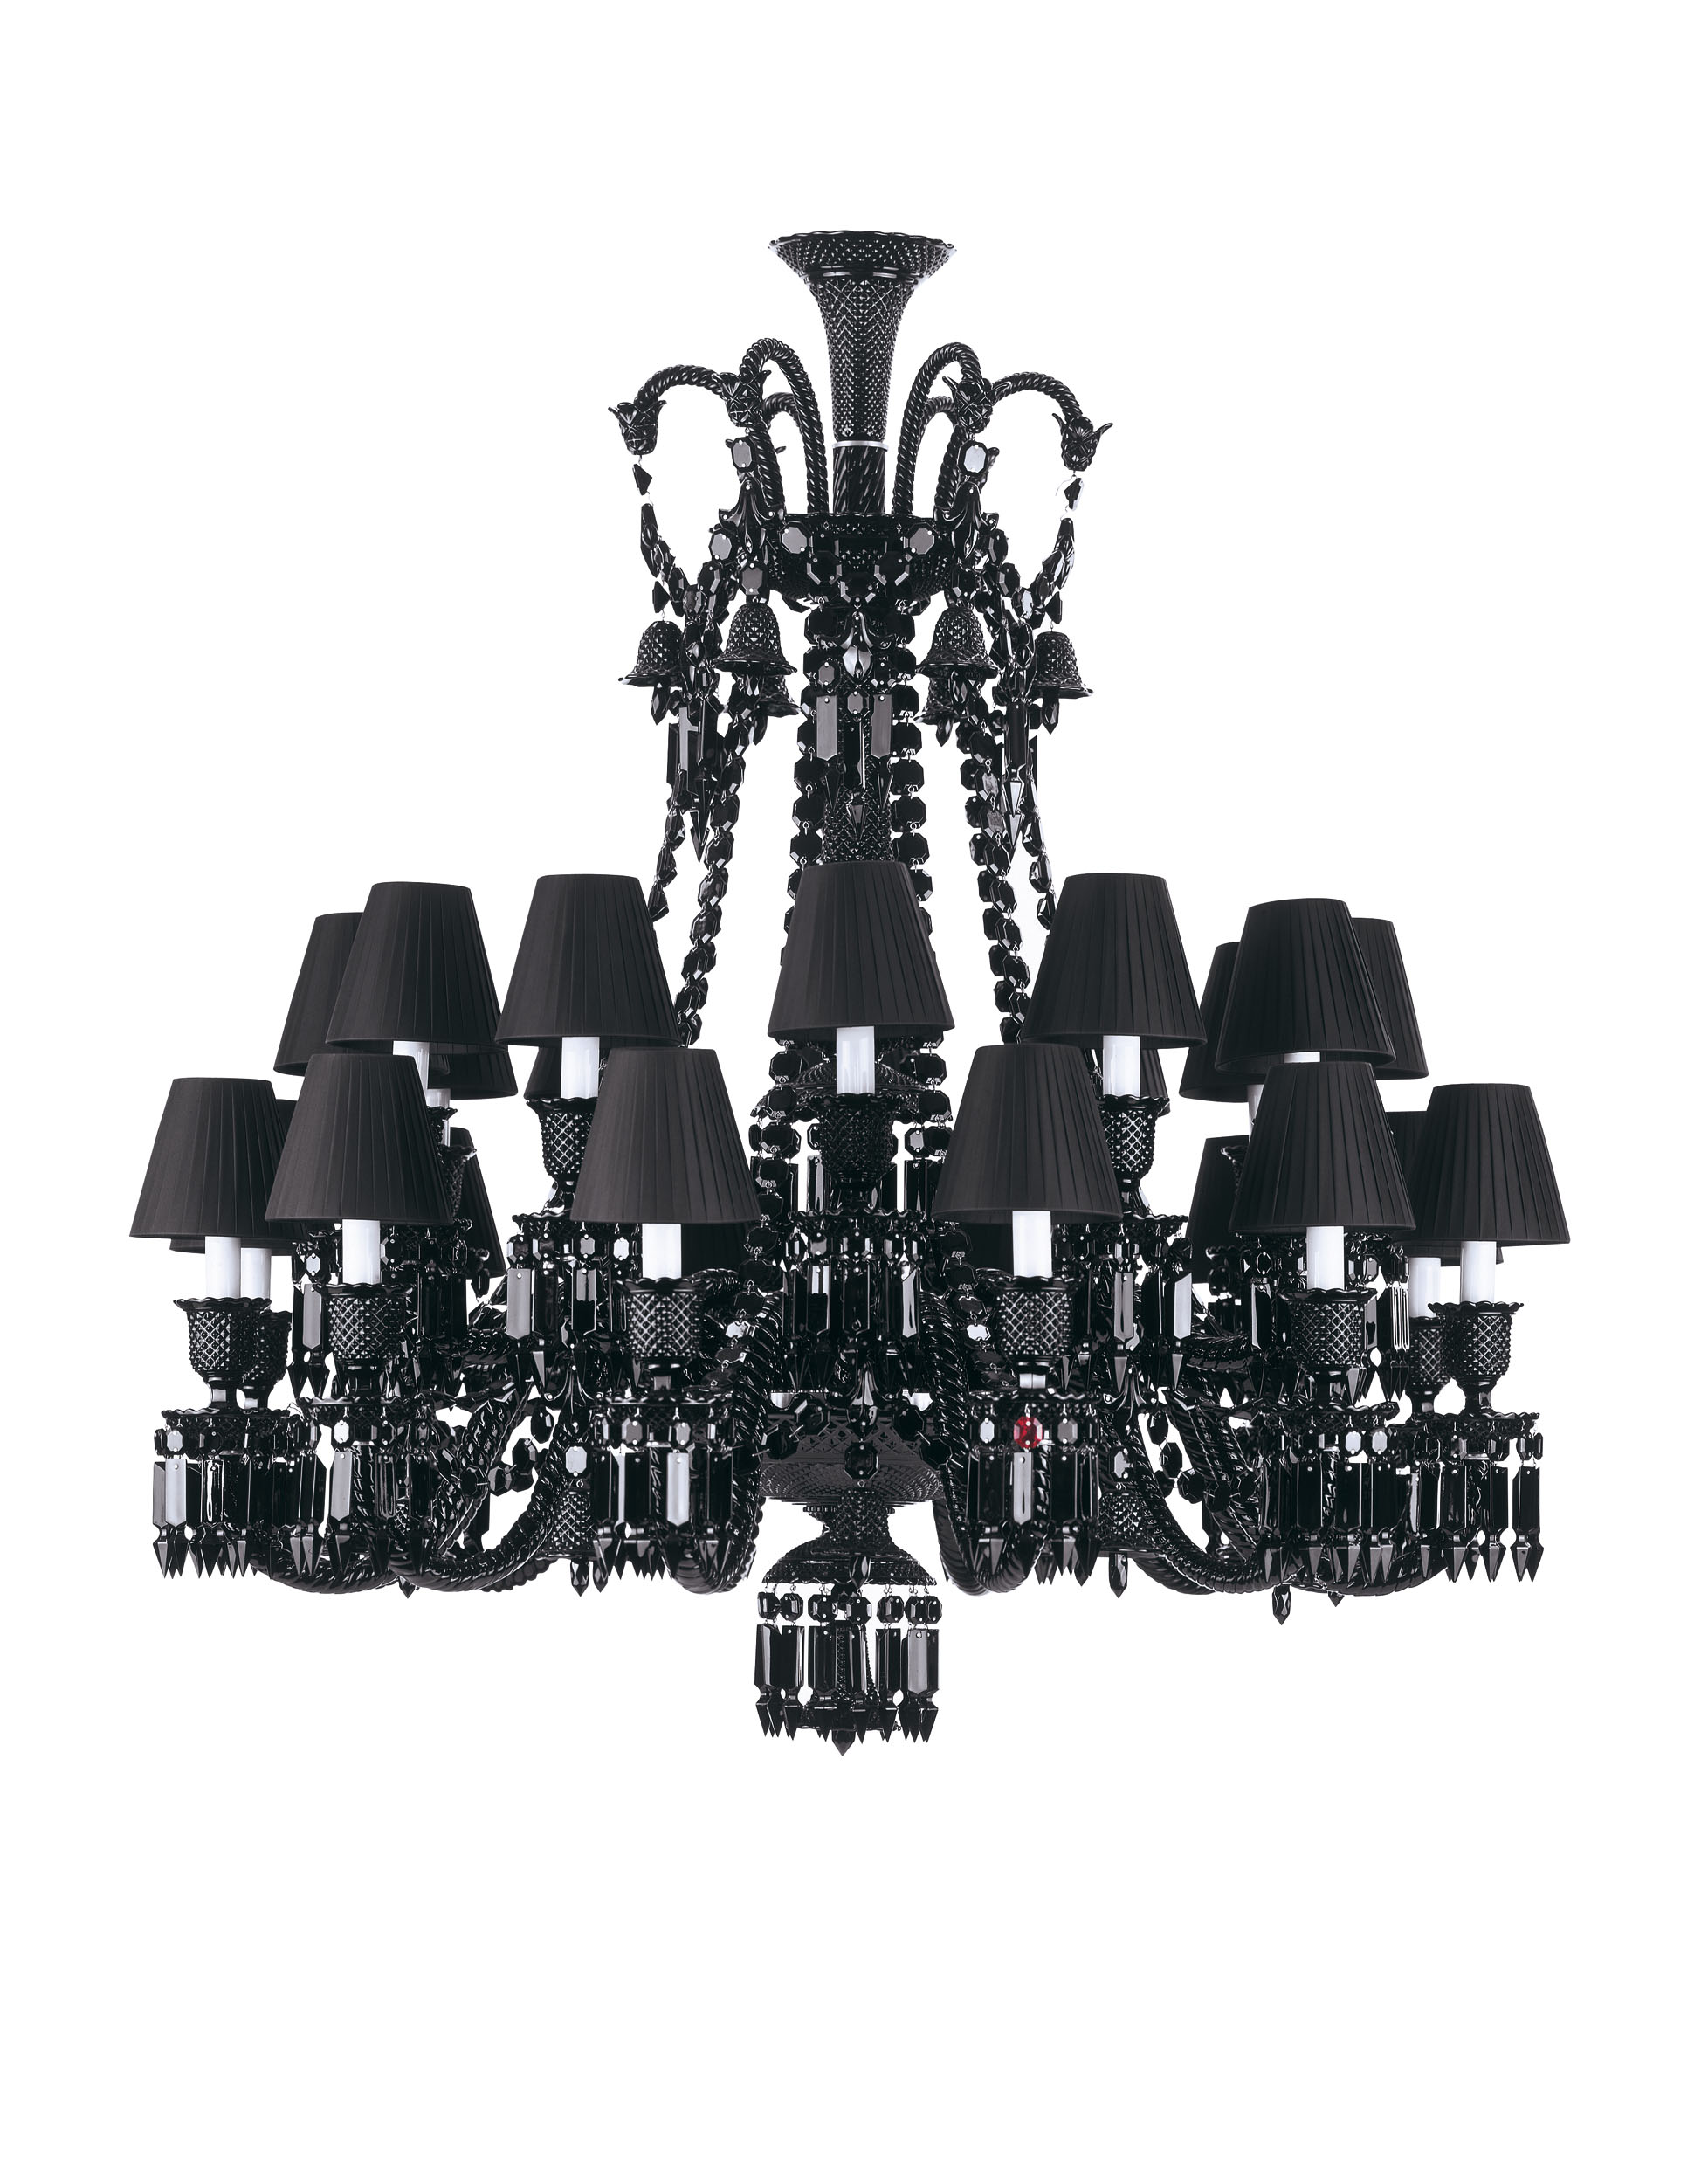 01 baccarat philippe starck zenith chandelier 2003 light for Lustre metal noir